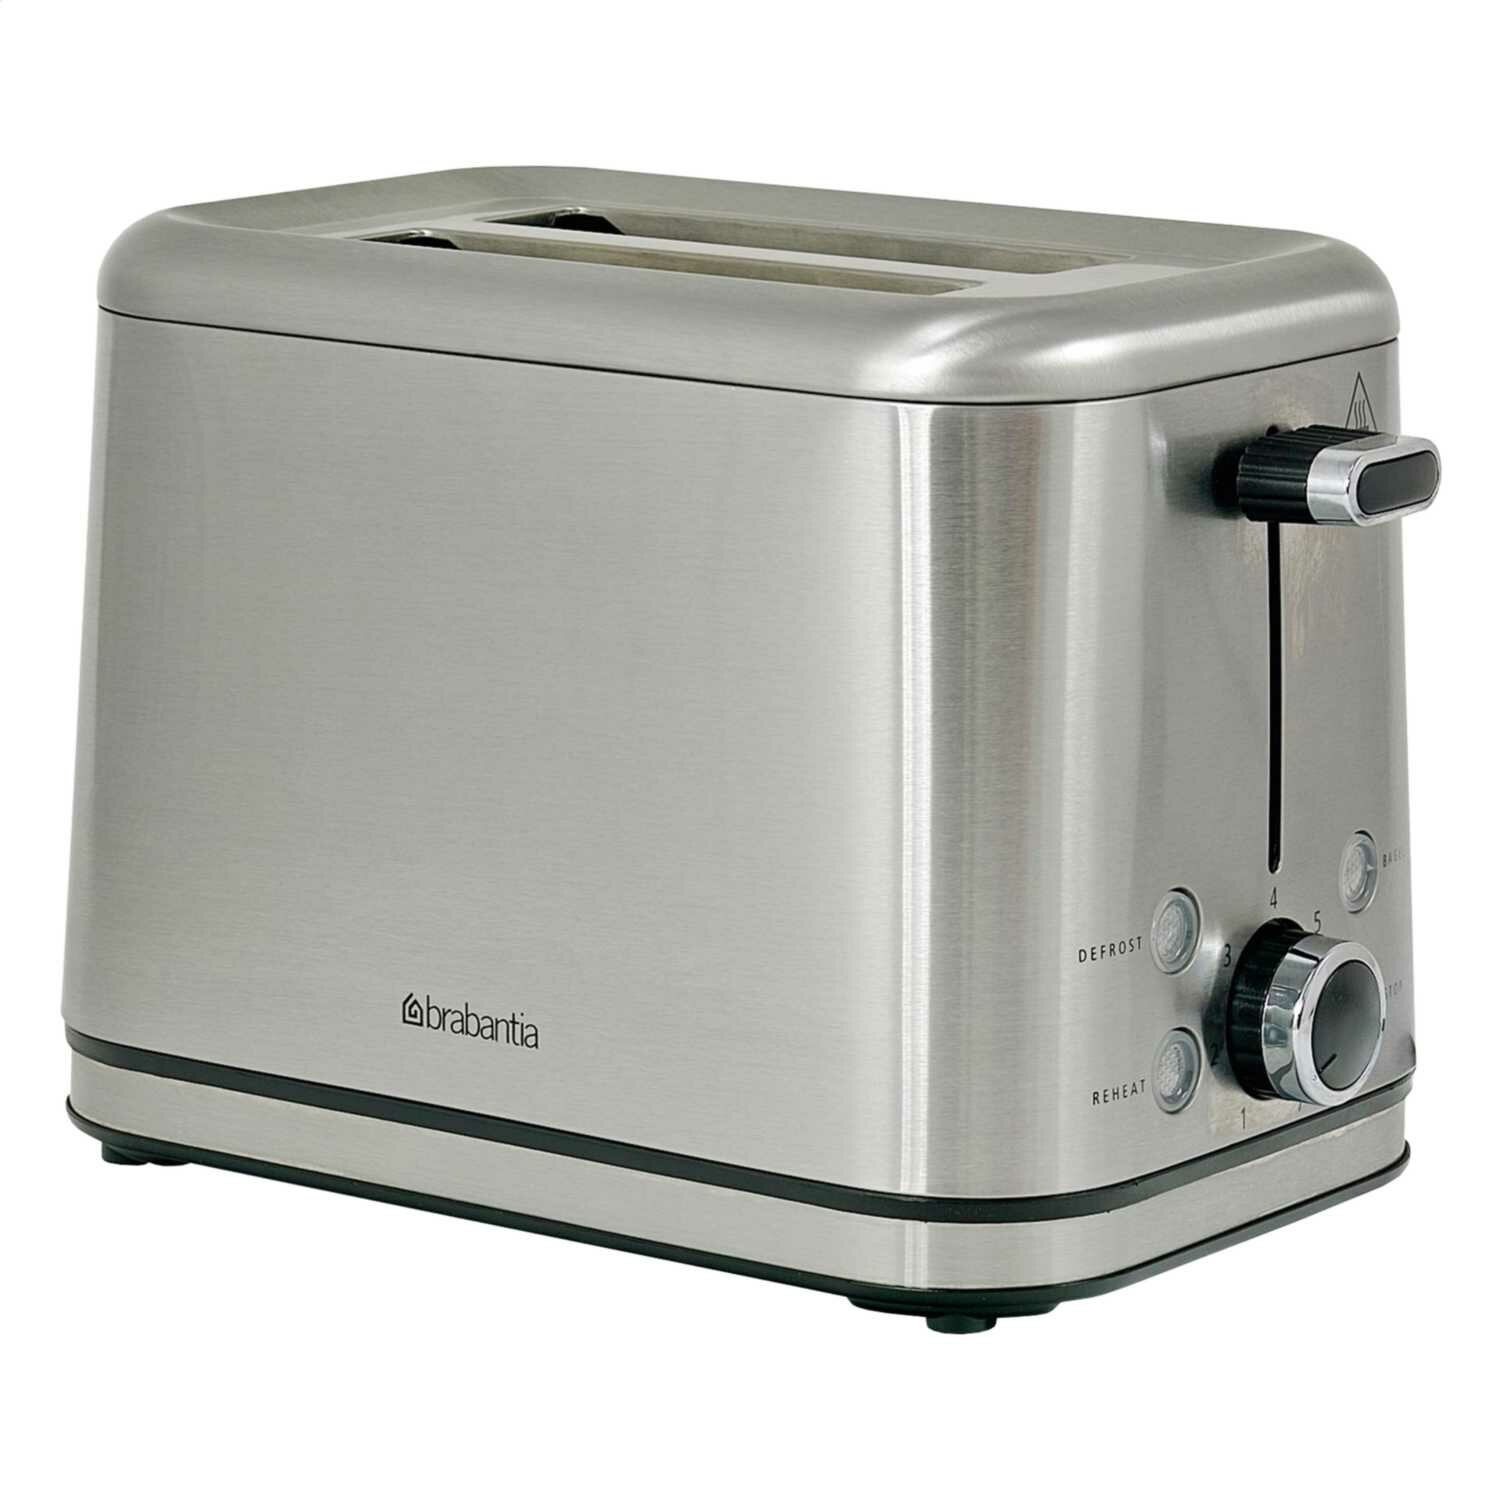 toasters review great toaster home stunning reviews appliances smeg expert slice toast looks